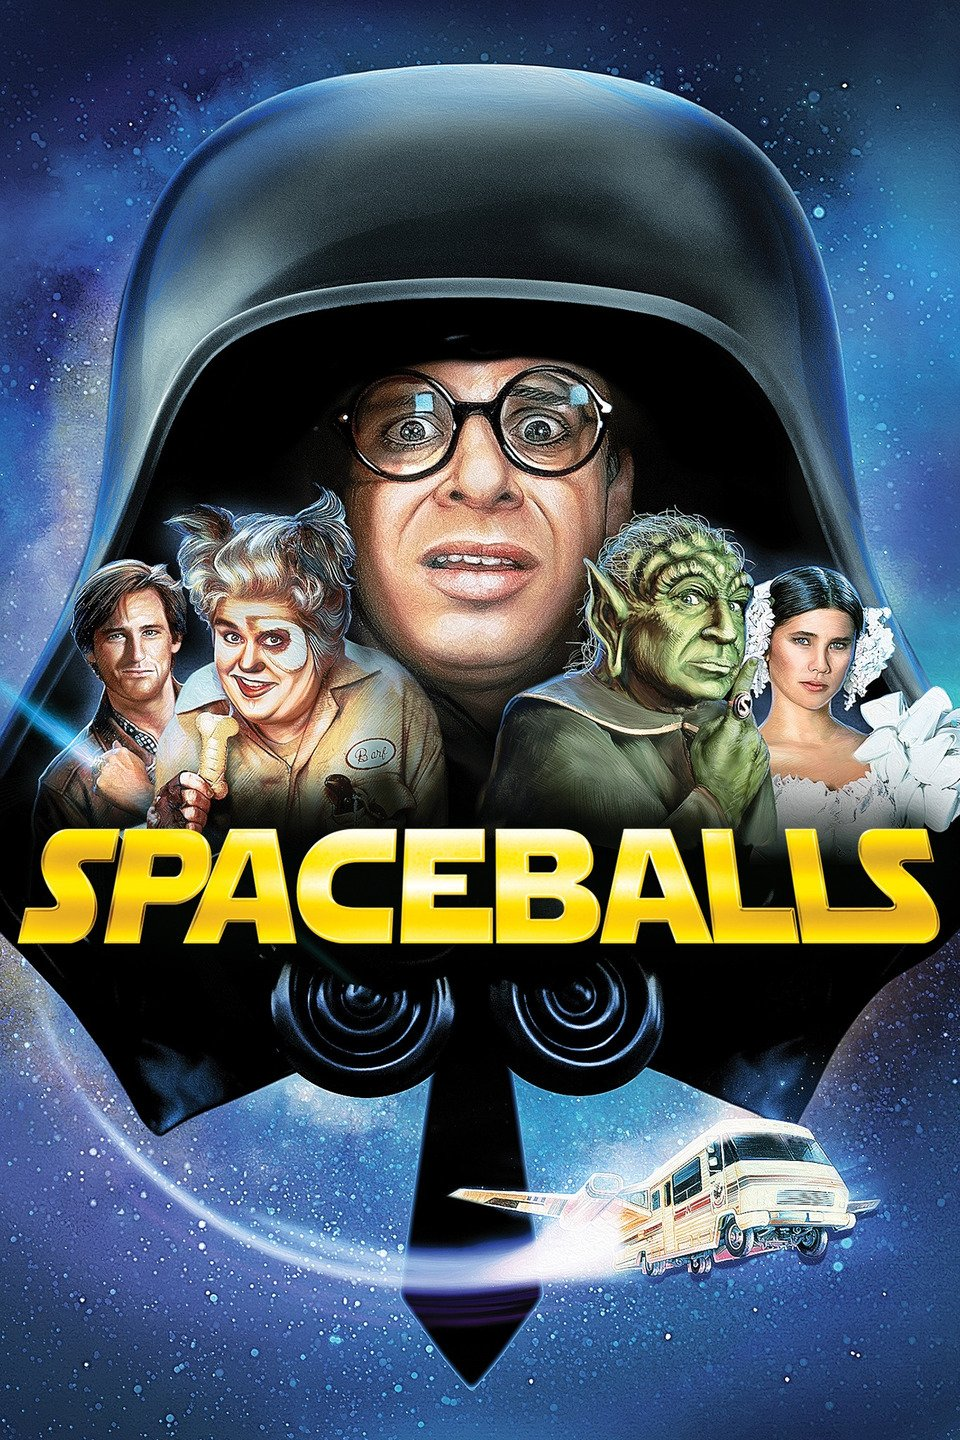 spaceballz.jpg